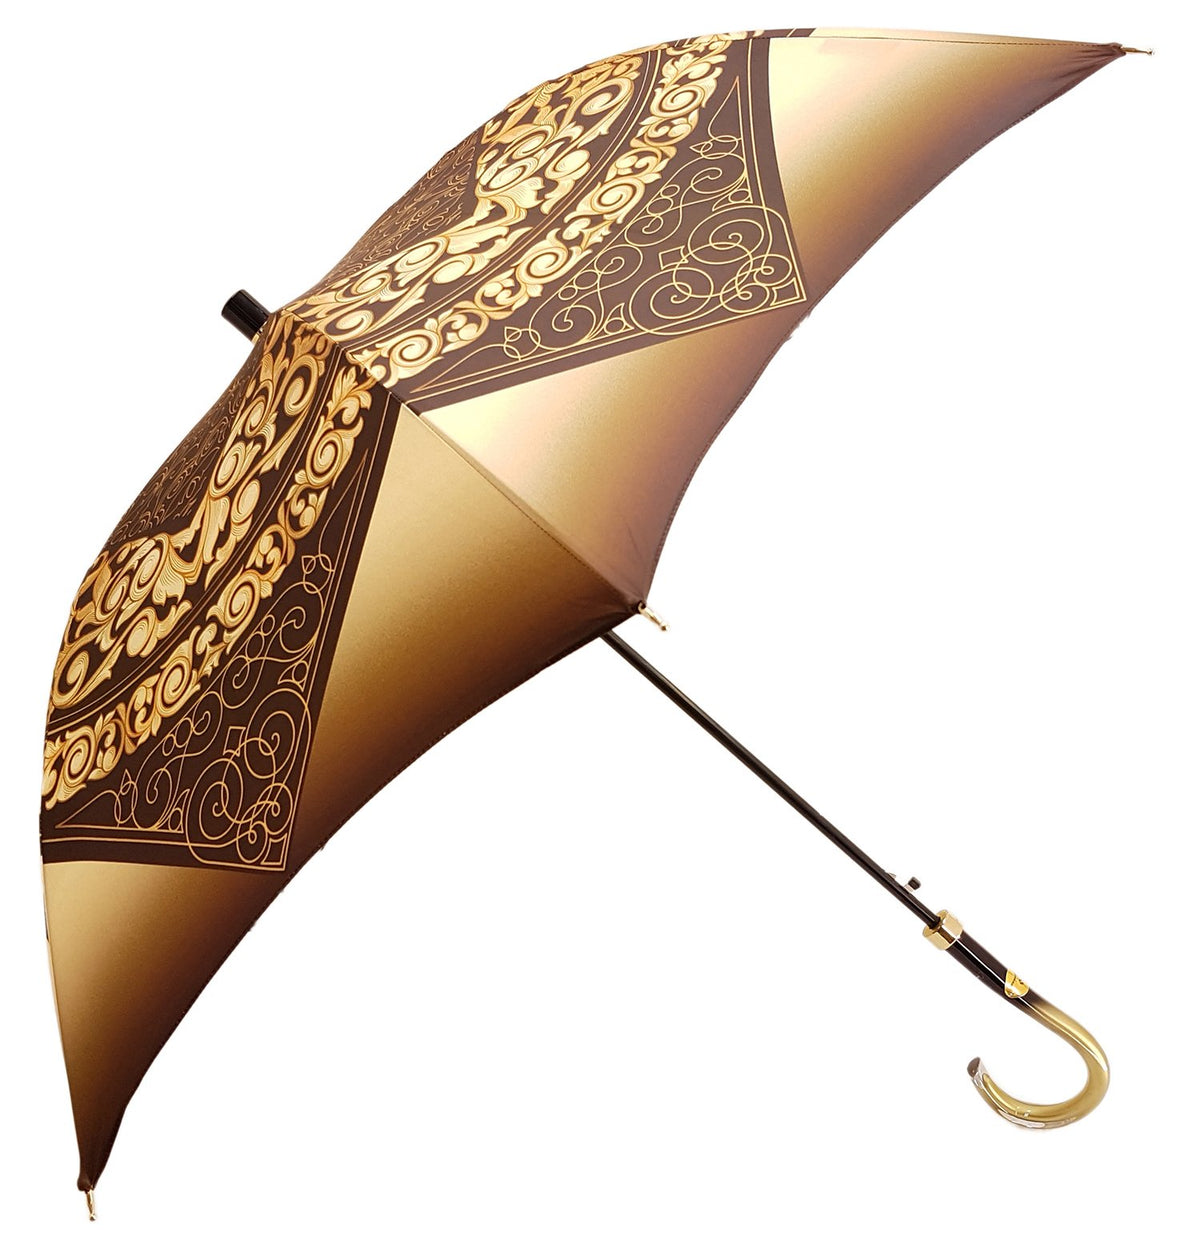 Elegant Women's Umbrella New Design, Awesome Colors - il-marchesato